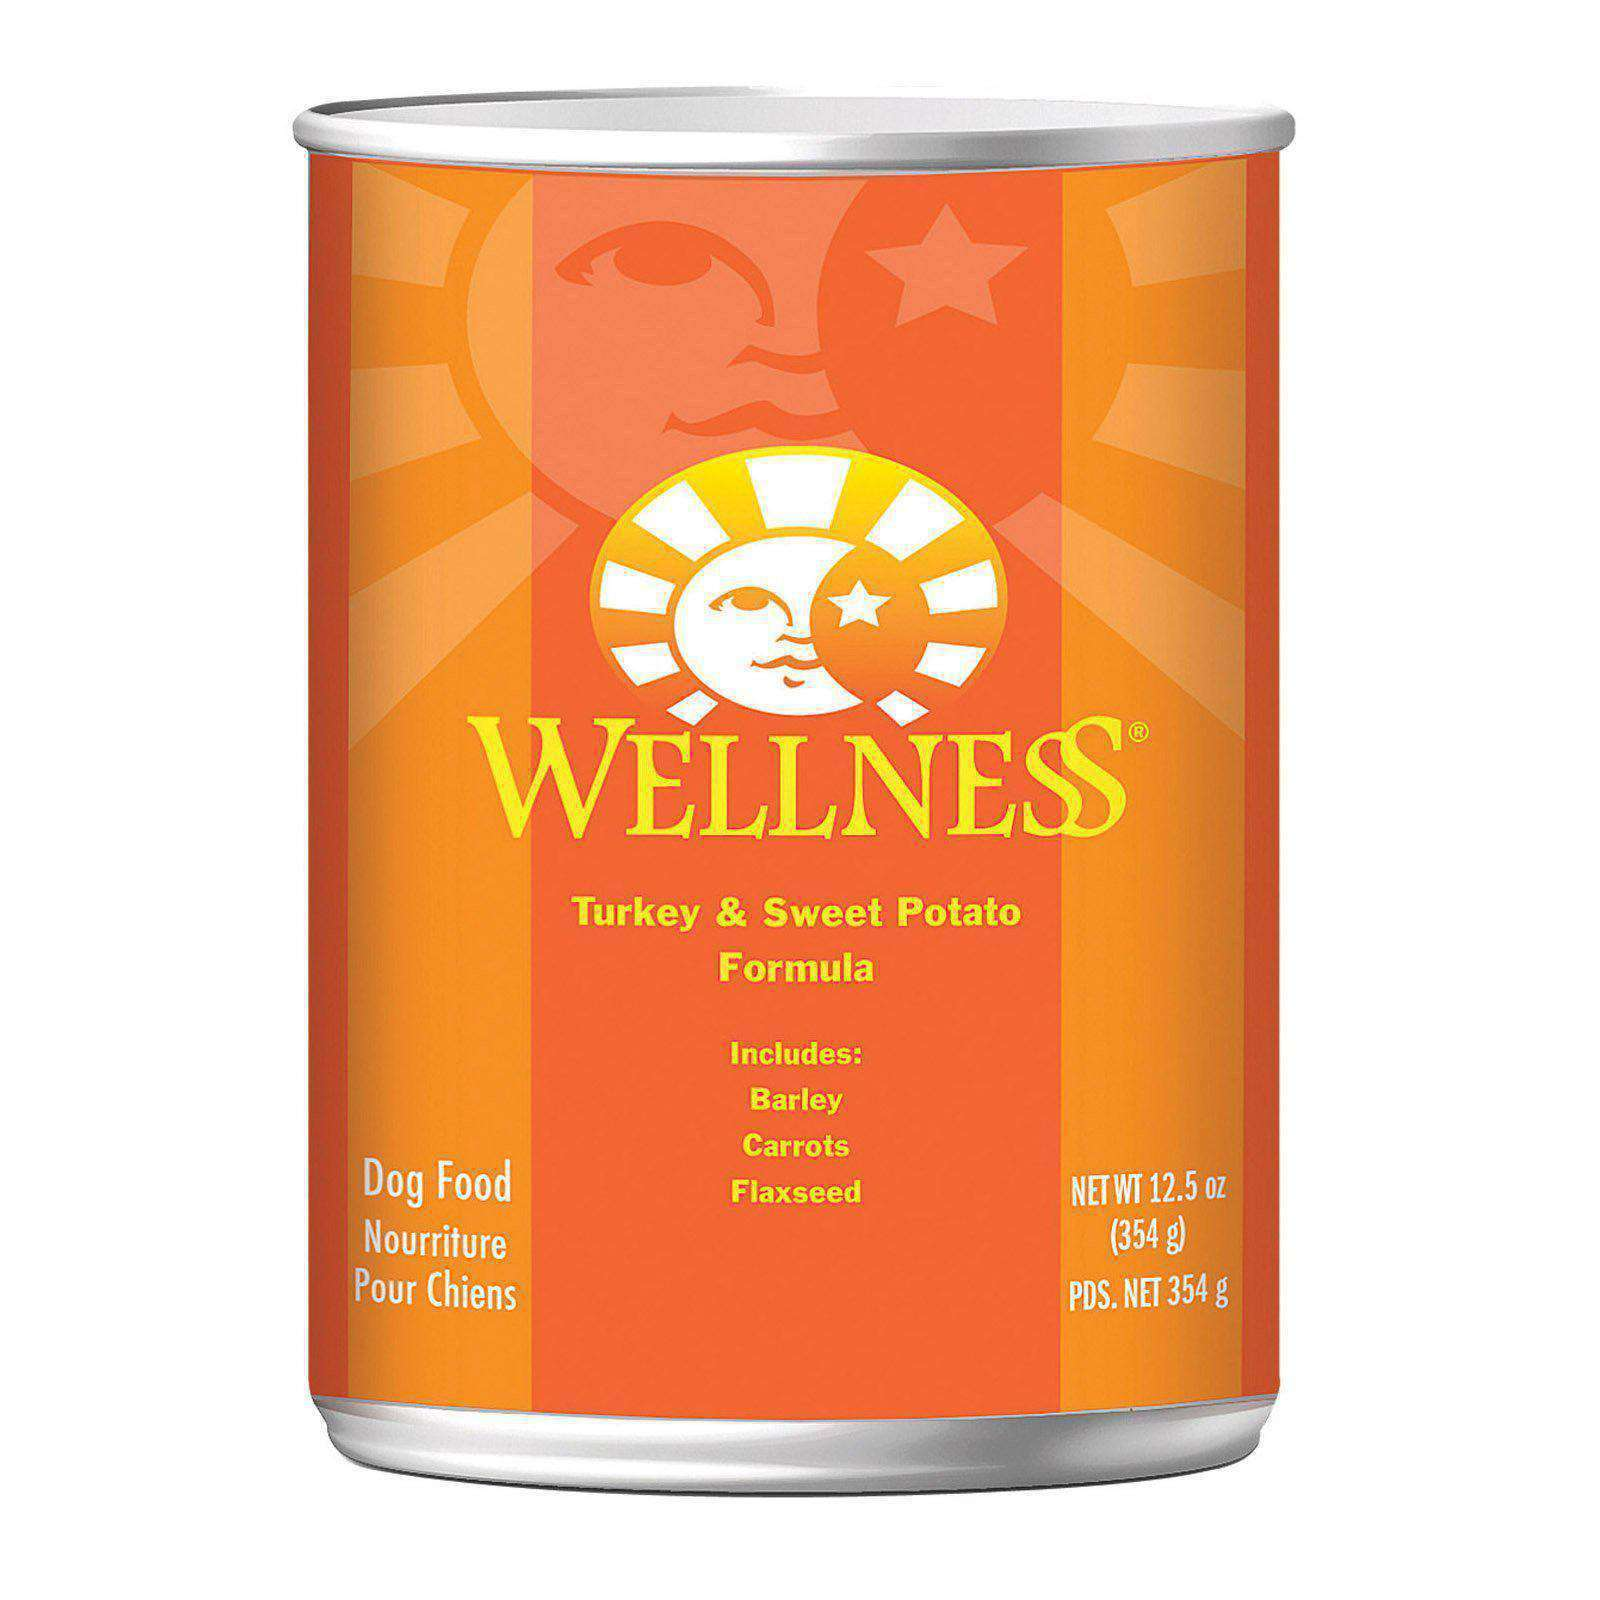 Wellness Pet Products Canned Dog Food - Turkey And Sweet Potato Recipe - Case Of 12 - 12.5 Oz.-Wellness Pet Products-DirtyFurClothing